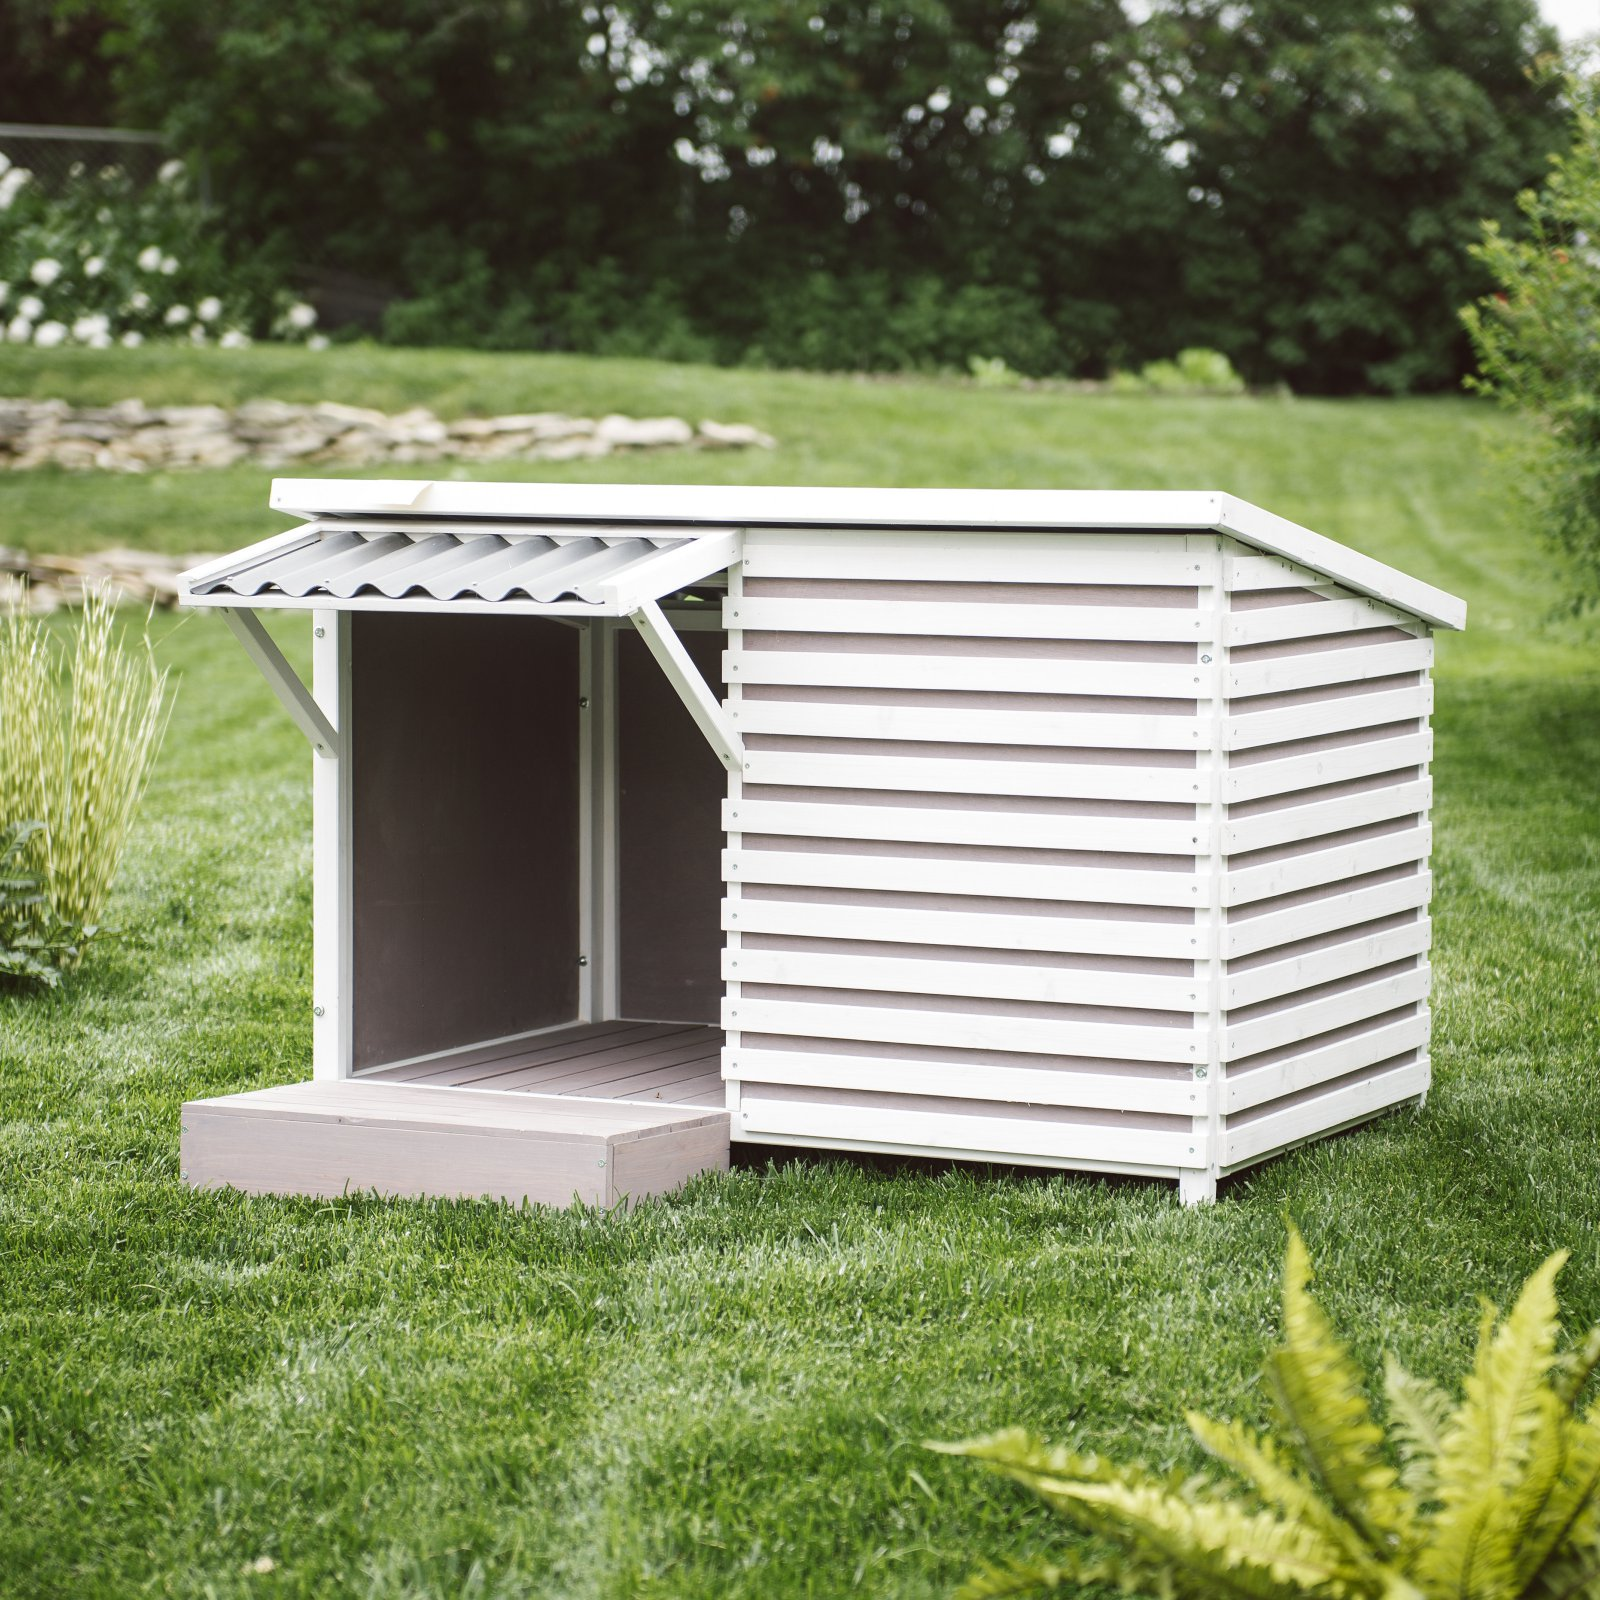 Boomer & George Archie Dog House by Boomer & George